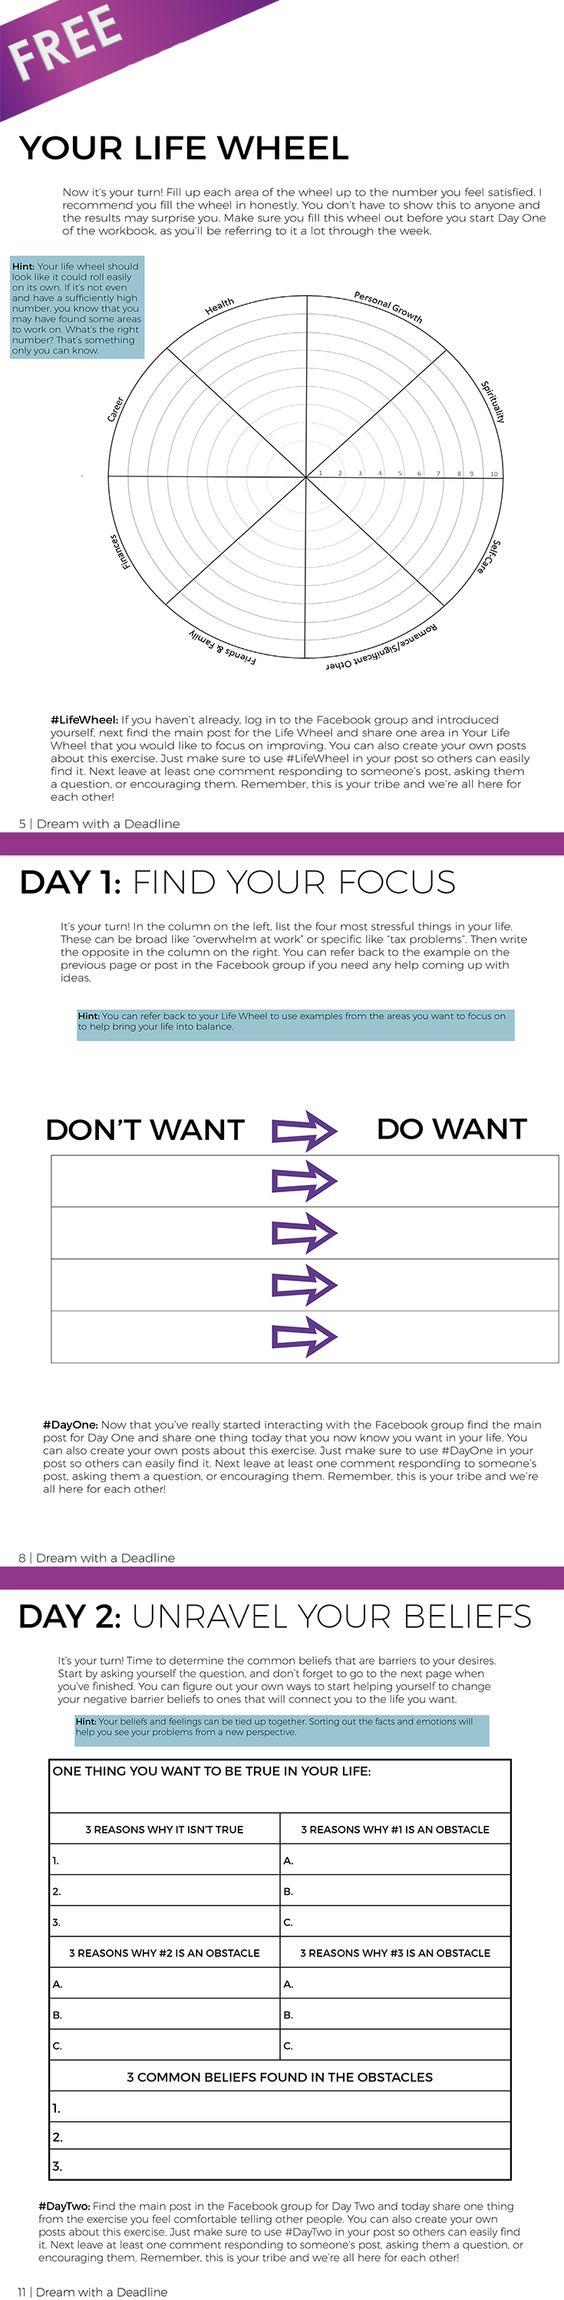 FREE Personal Development Goal Setting Workbook - 26+ pages - 5 Day Challenge & 2 Bonus Exercises: